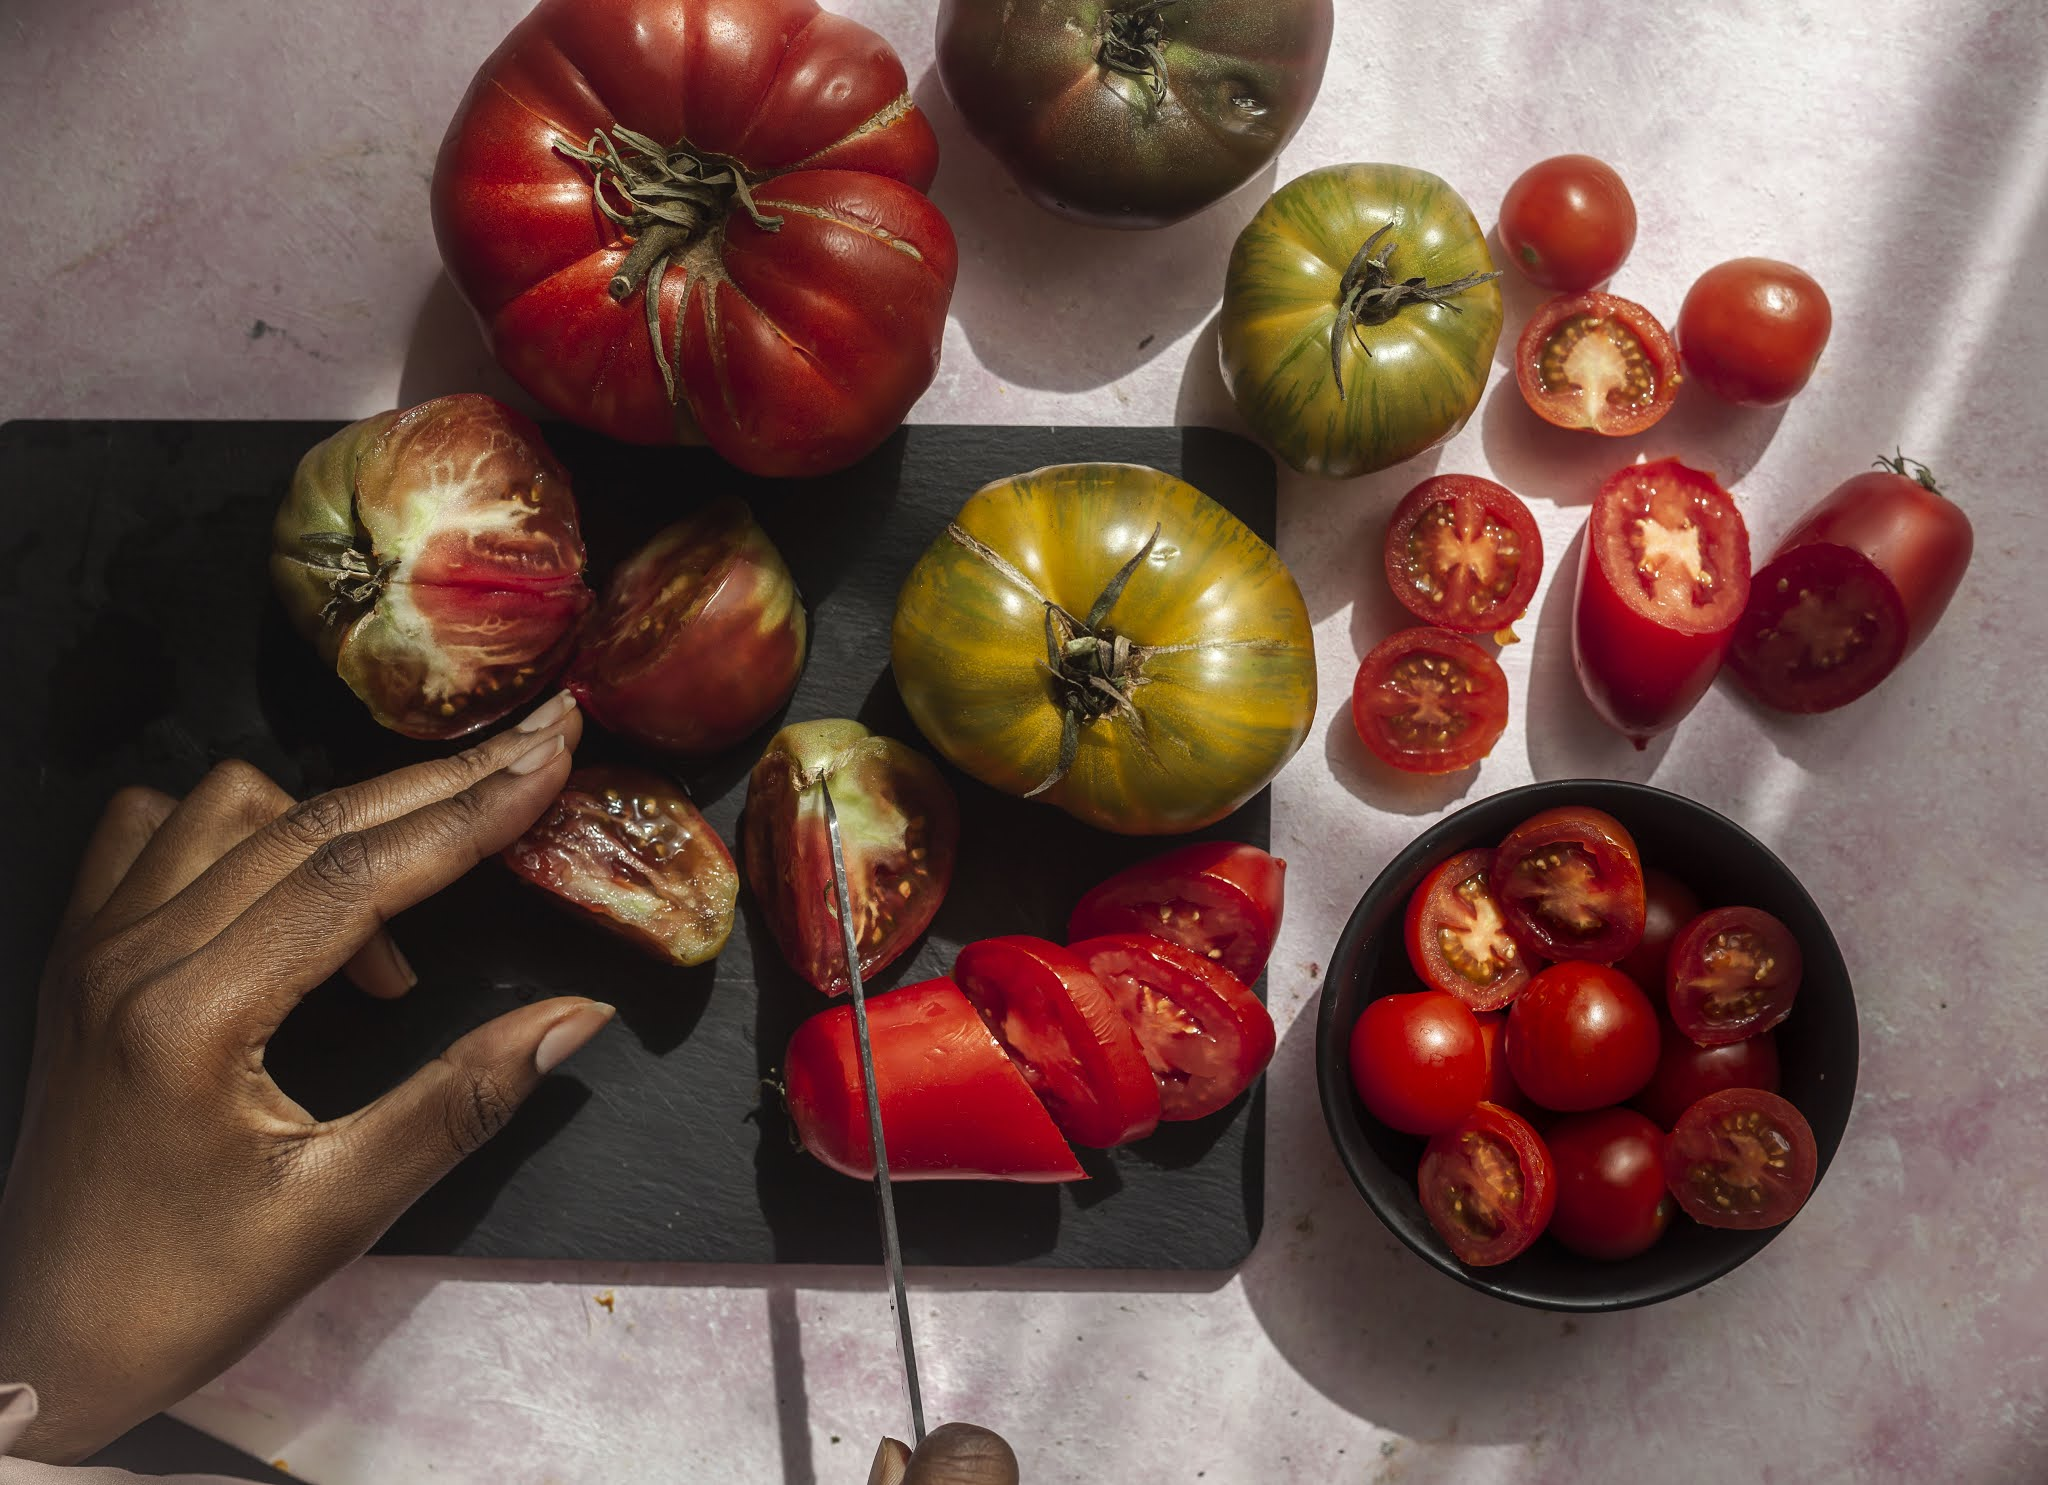 The 7 myths of food photography